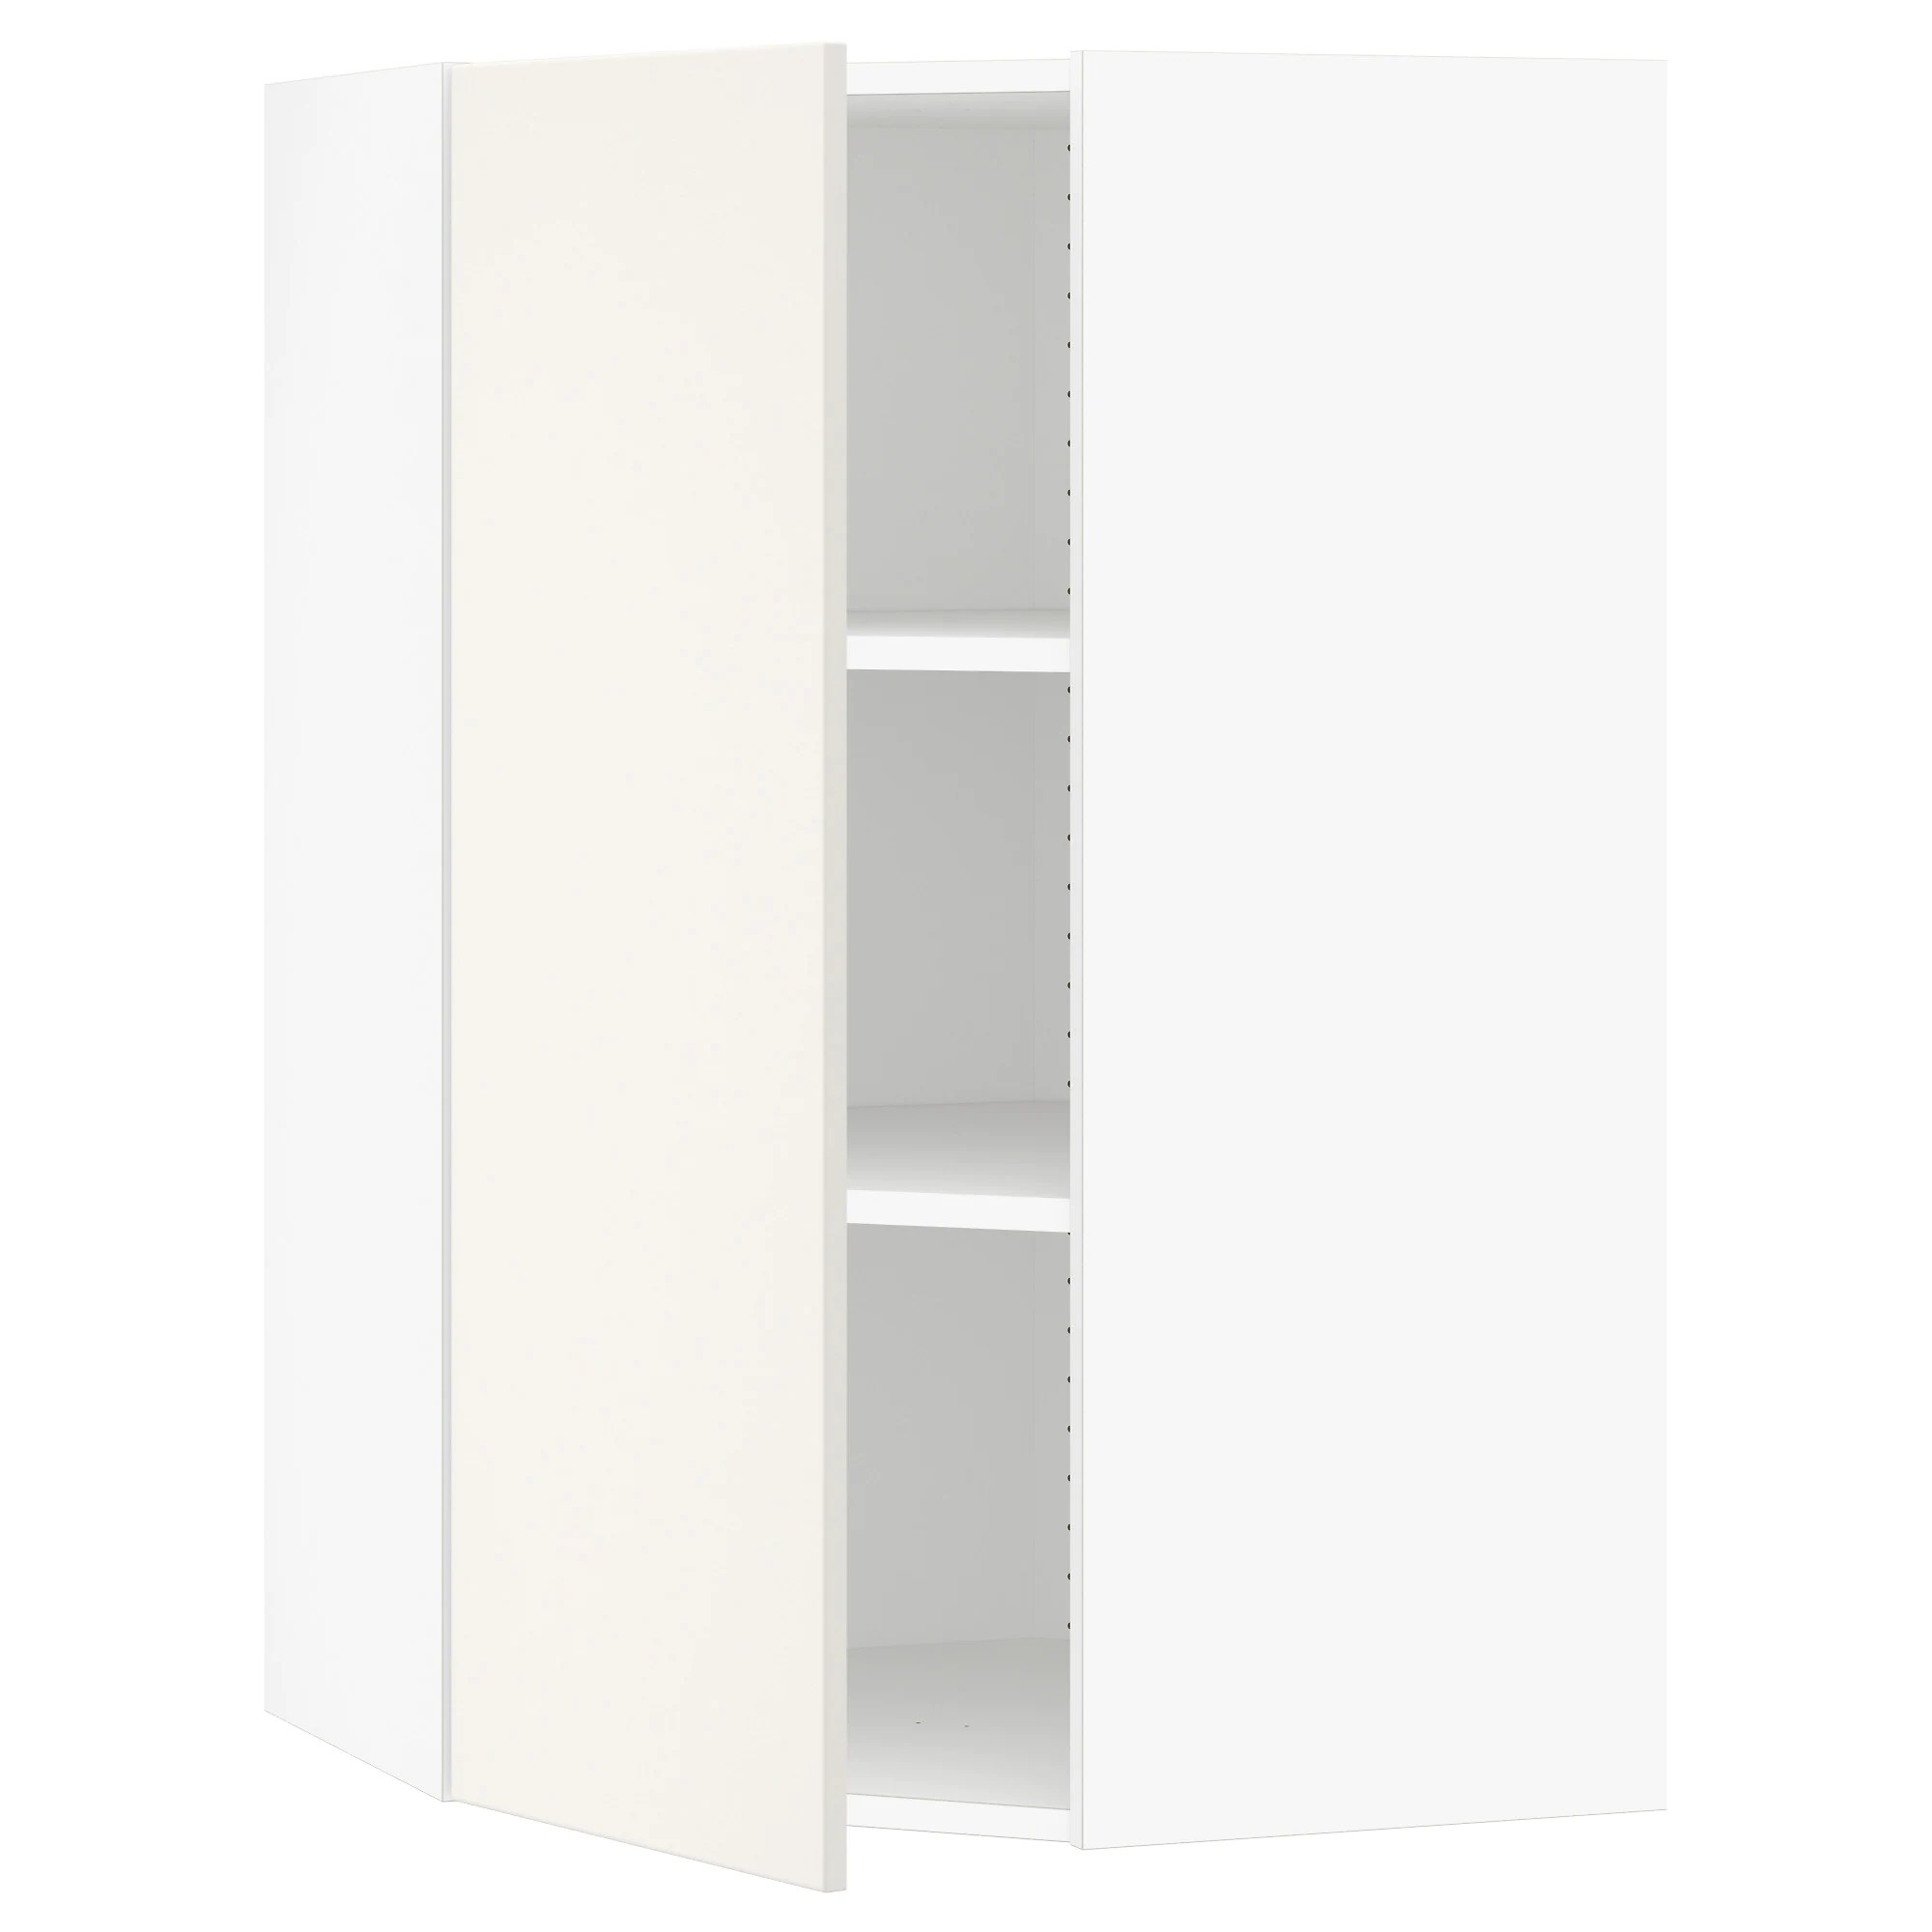 Ikea Kitchen Tall Corner Cabinet Sektion Corner Wall Cabinet With Shelves White Veddinge White